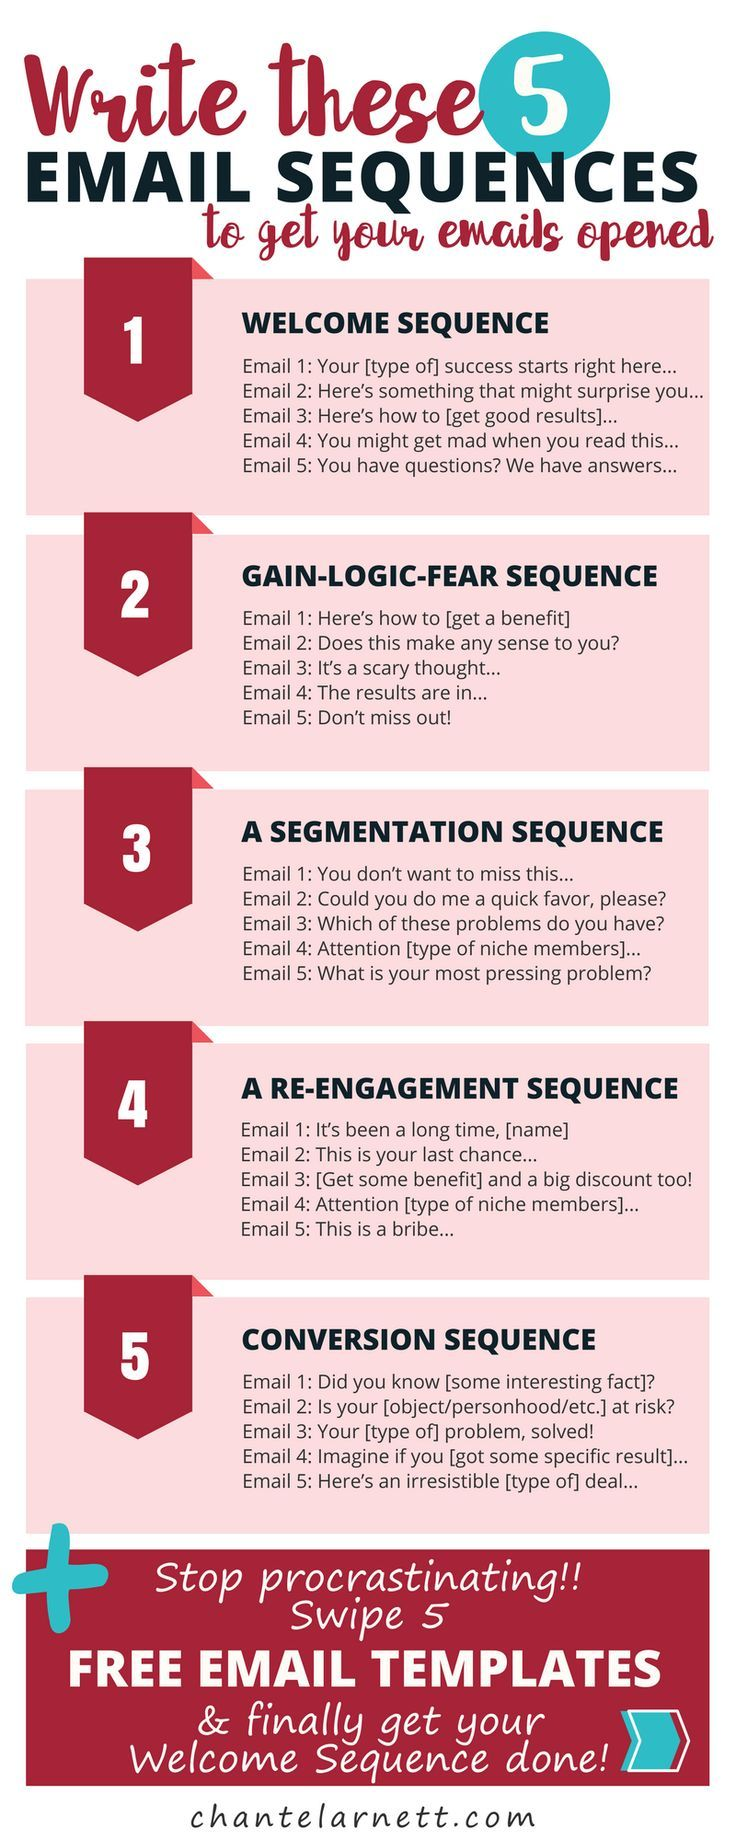 Welcome Sequence Templates Pinterest Template Email Marketing - What is email template